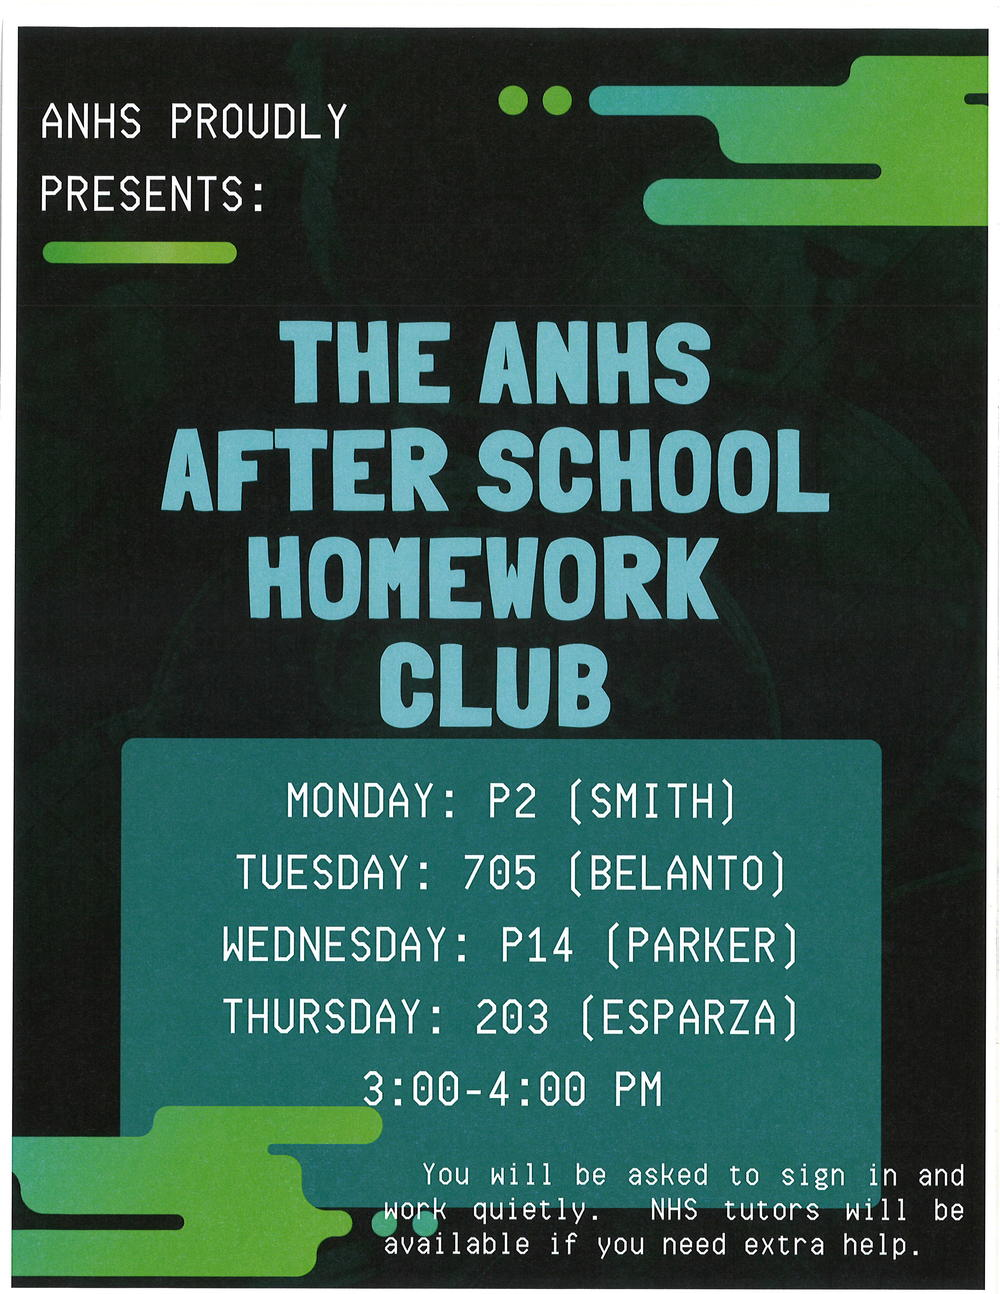 After School Homework Club